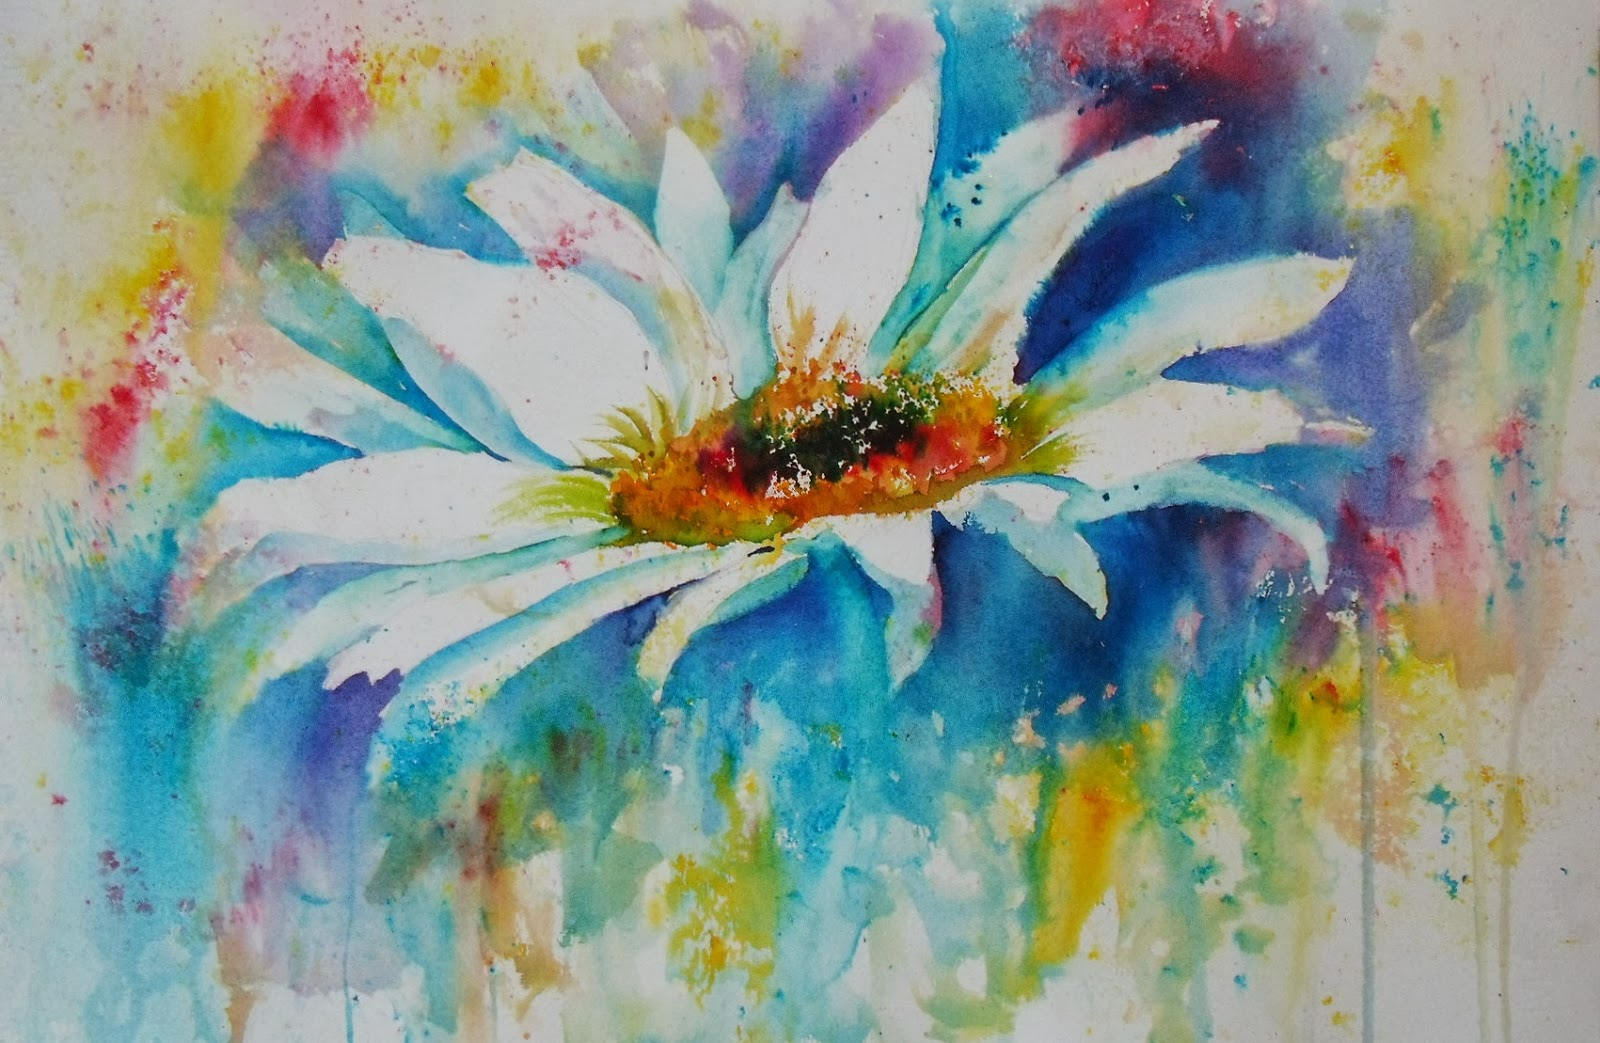 Artists: Art By Judith Farnworth: Brusho Paintings